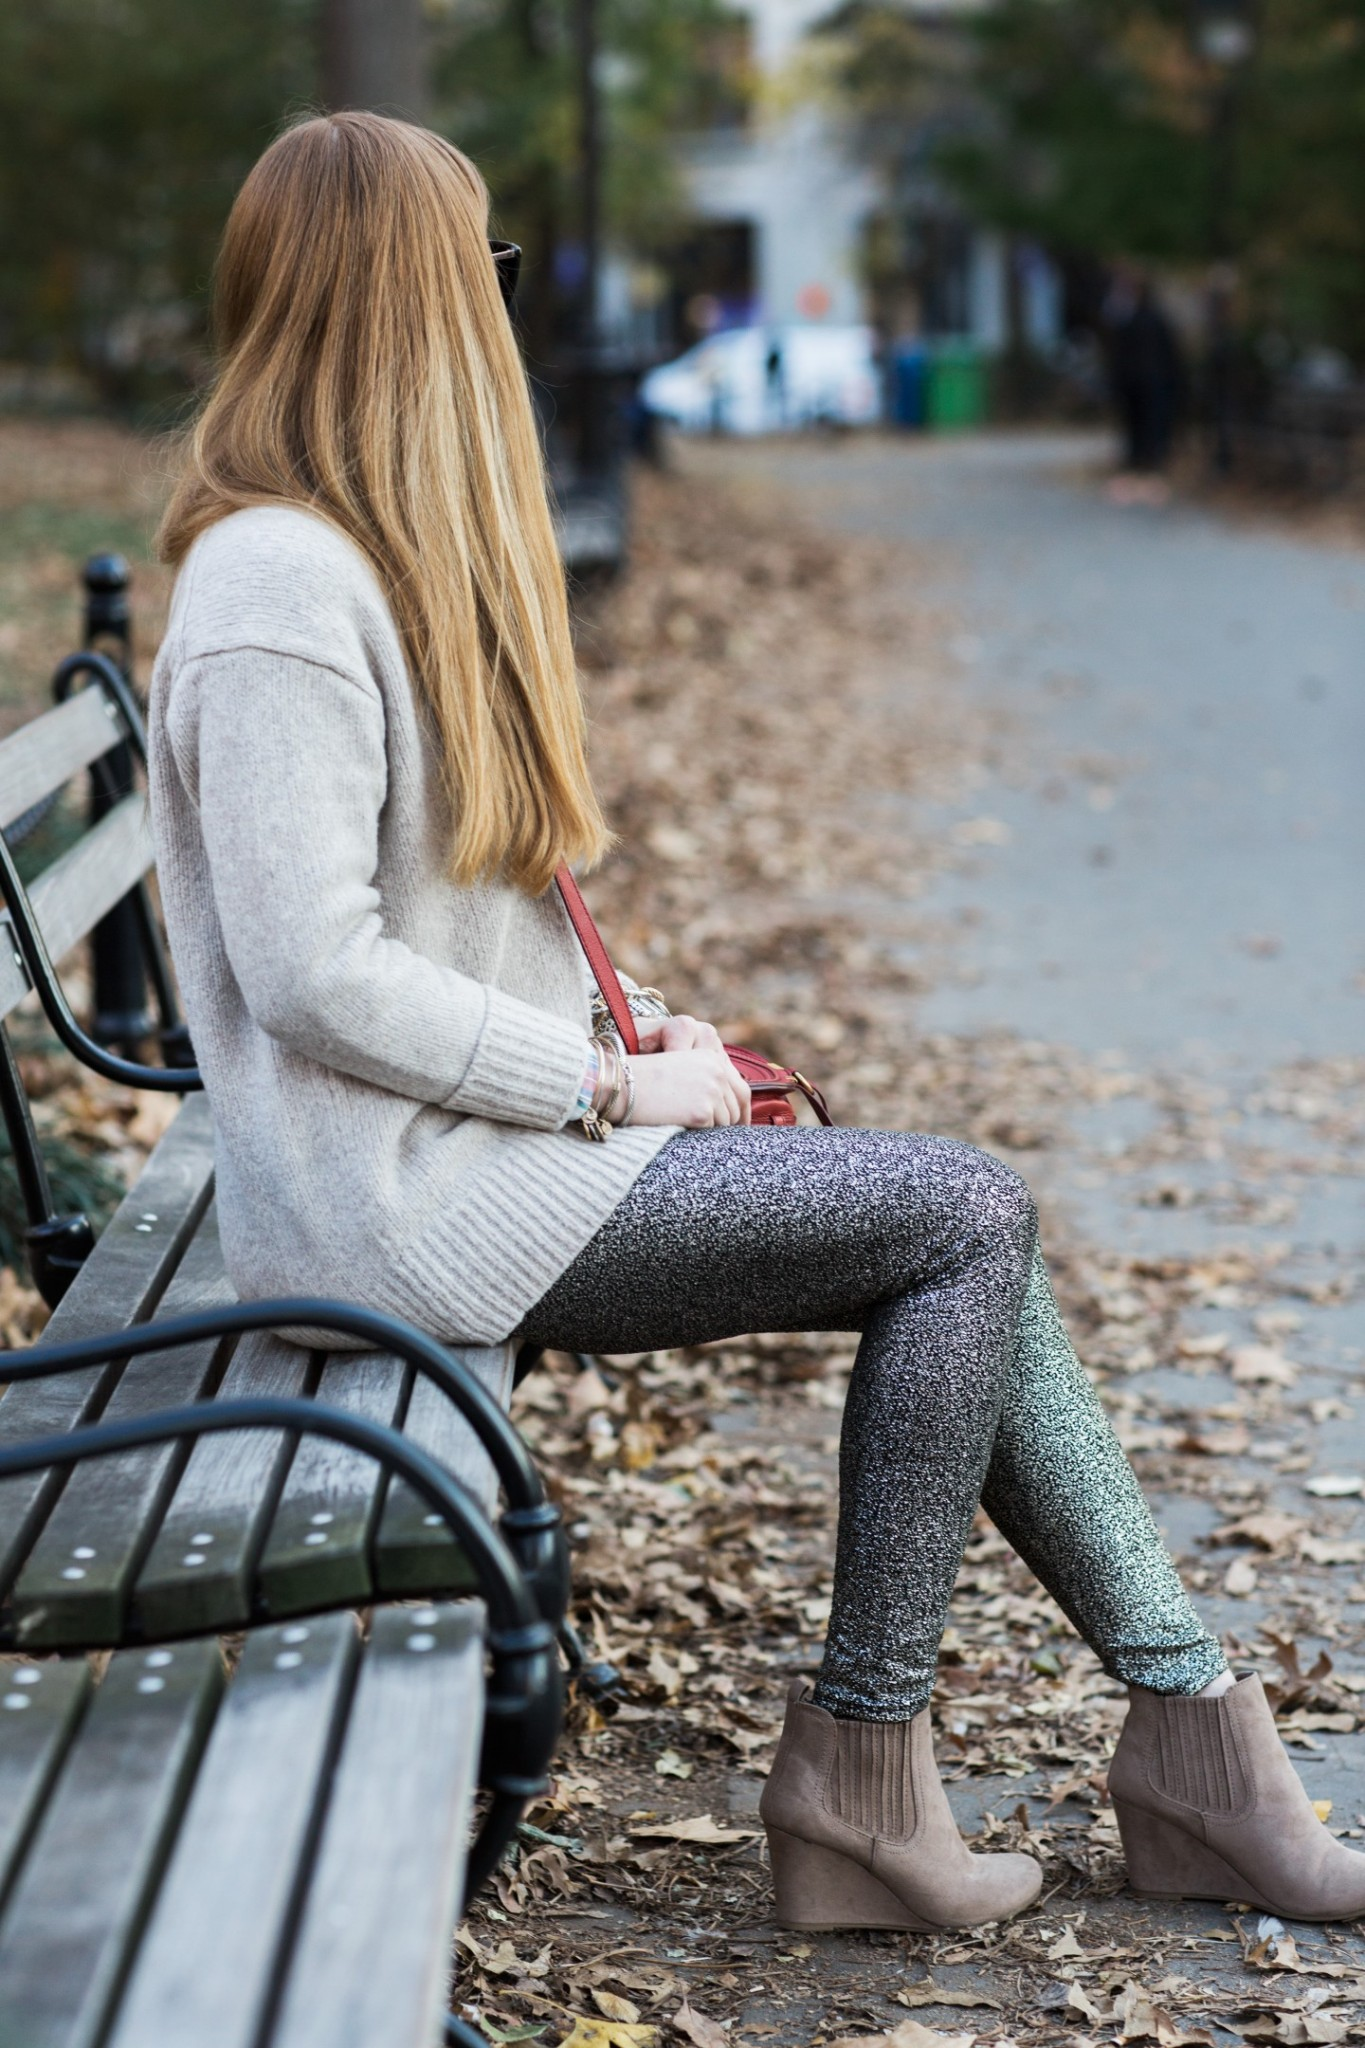 Top London fashion blogger, Mollie Moore, features 5 holiday looks to recreate year after year: woman sat on a bench wearing a cozy knit pullover, sequin leggings and a saddle crossover bag